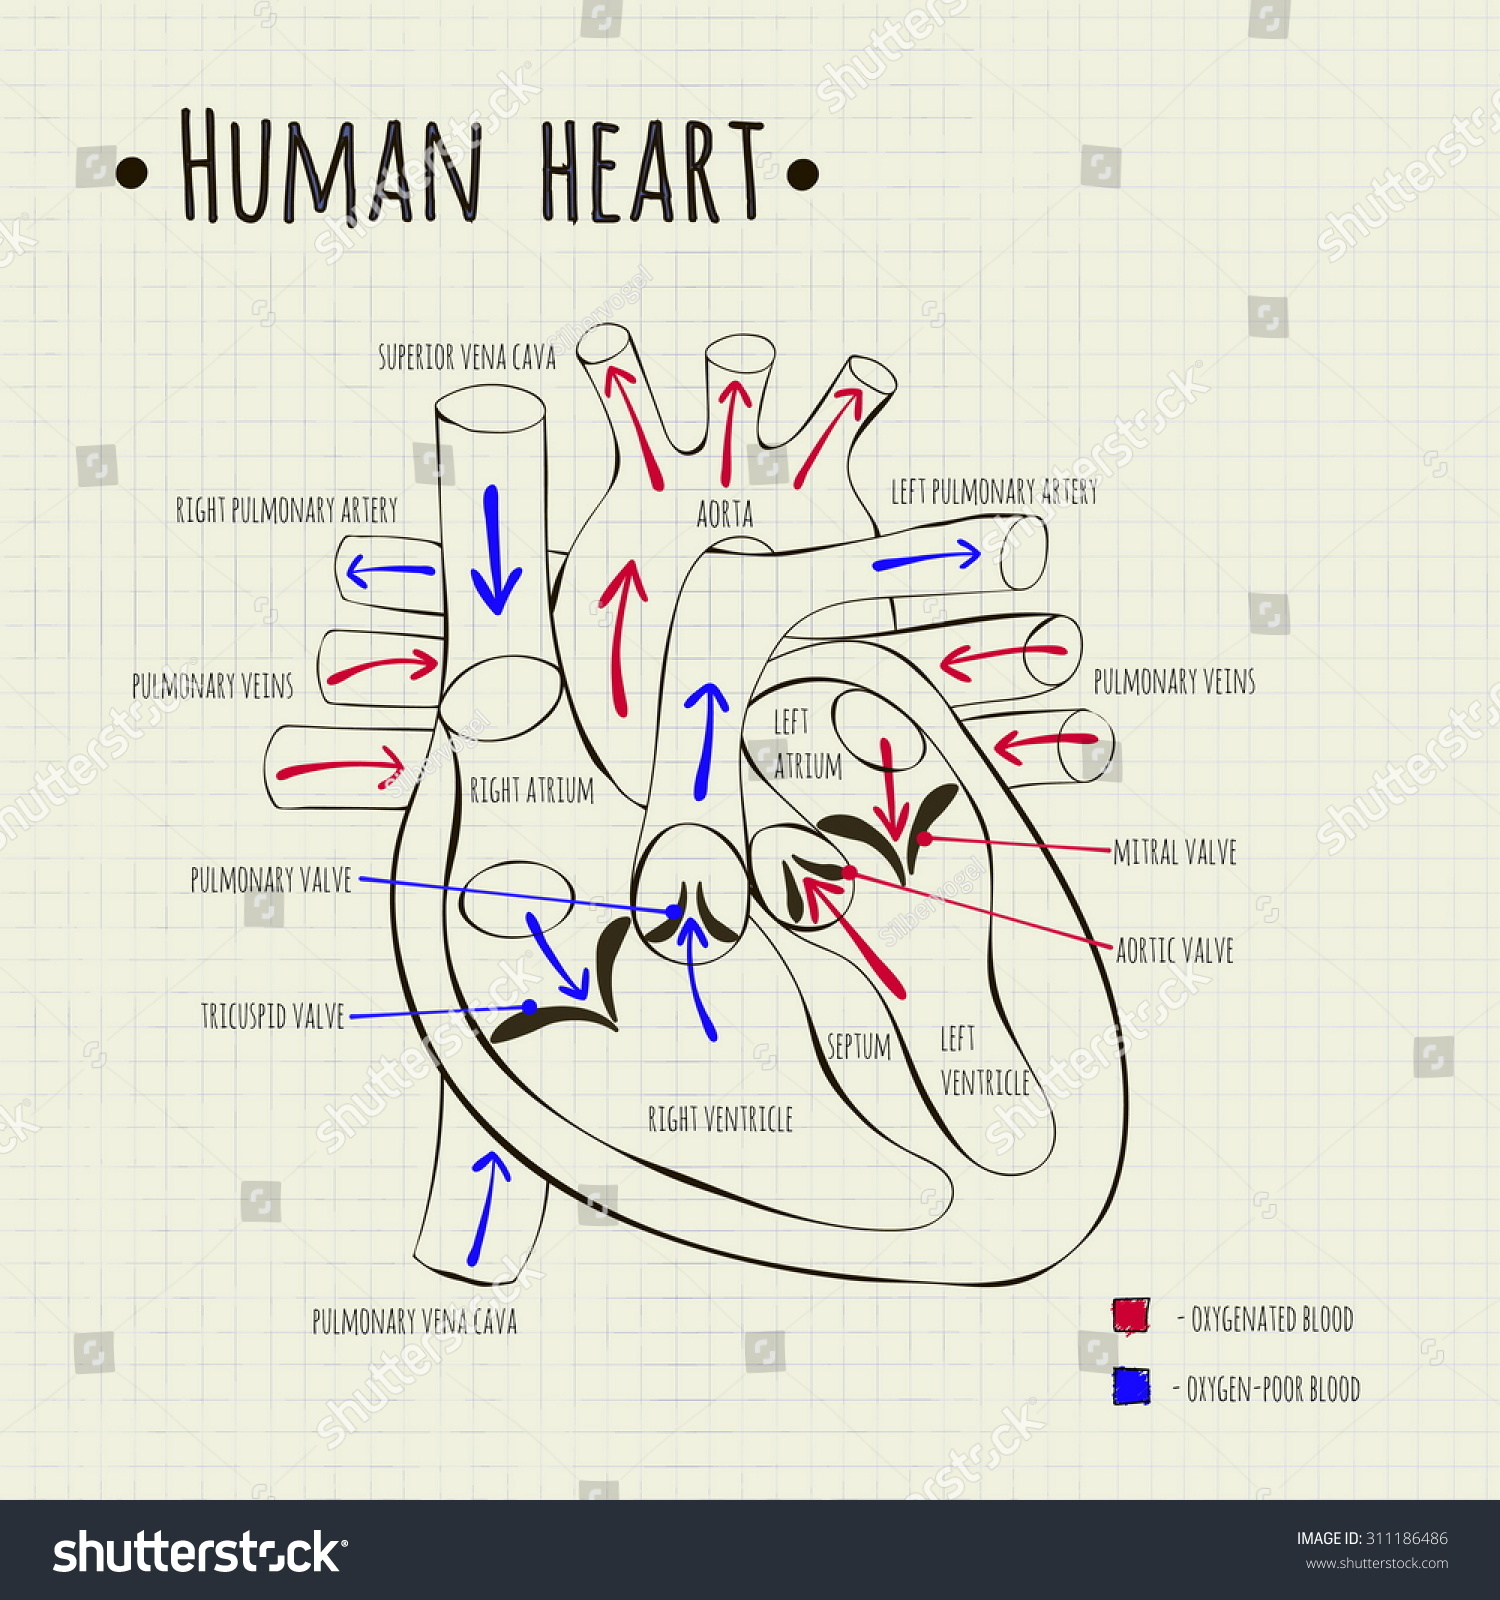 vector drawing human heart diagram stock vector 311186486, Muscles